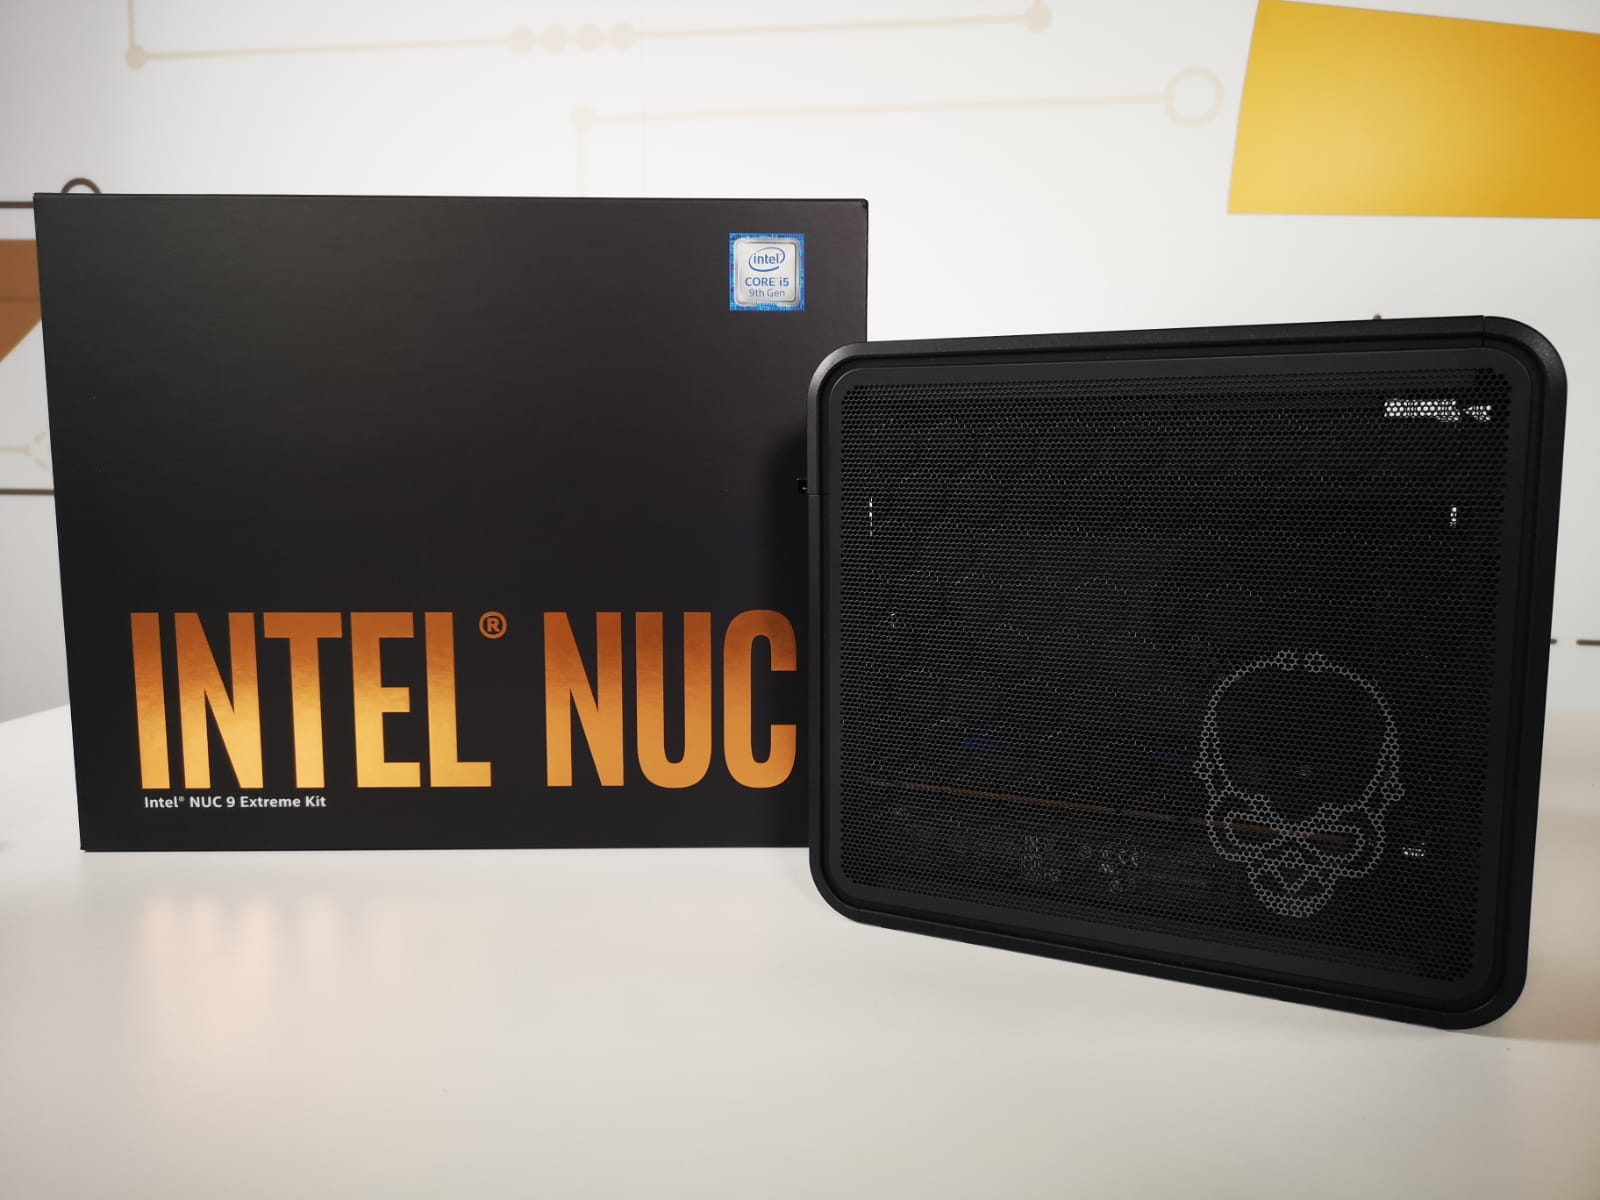 Review Intel NUC 9 Extreme Kit